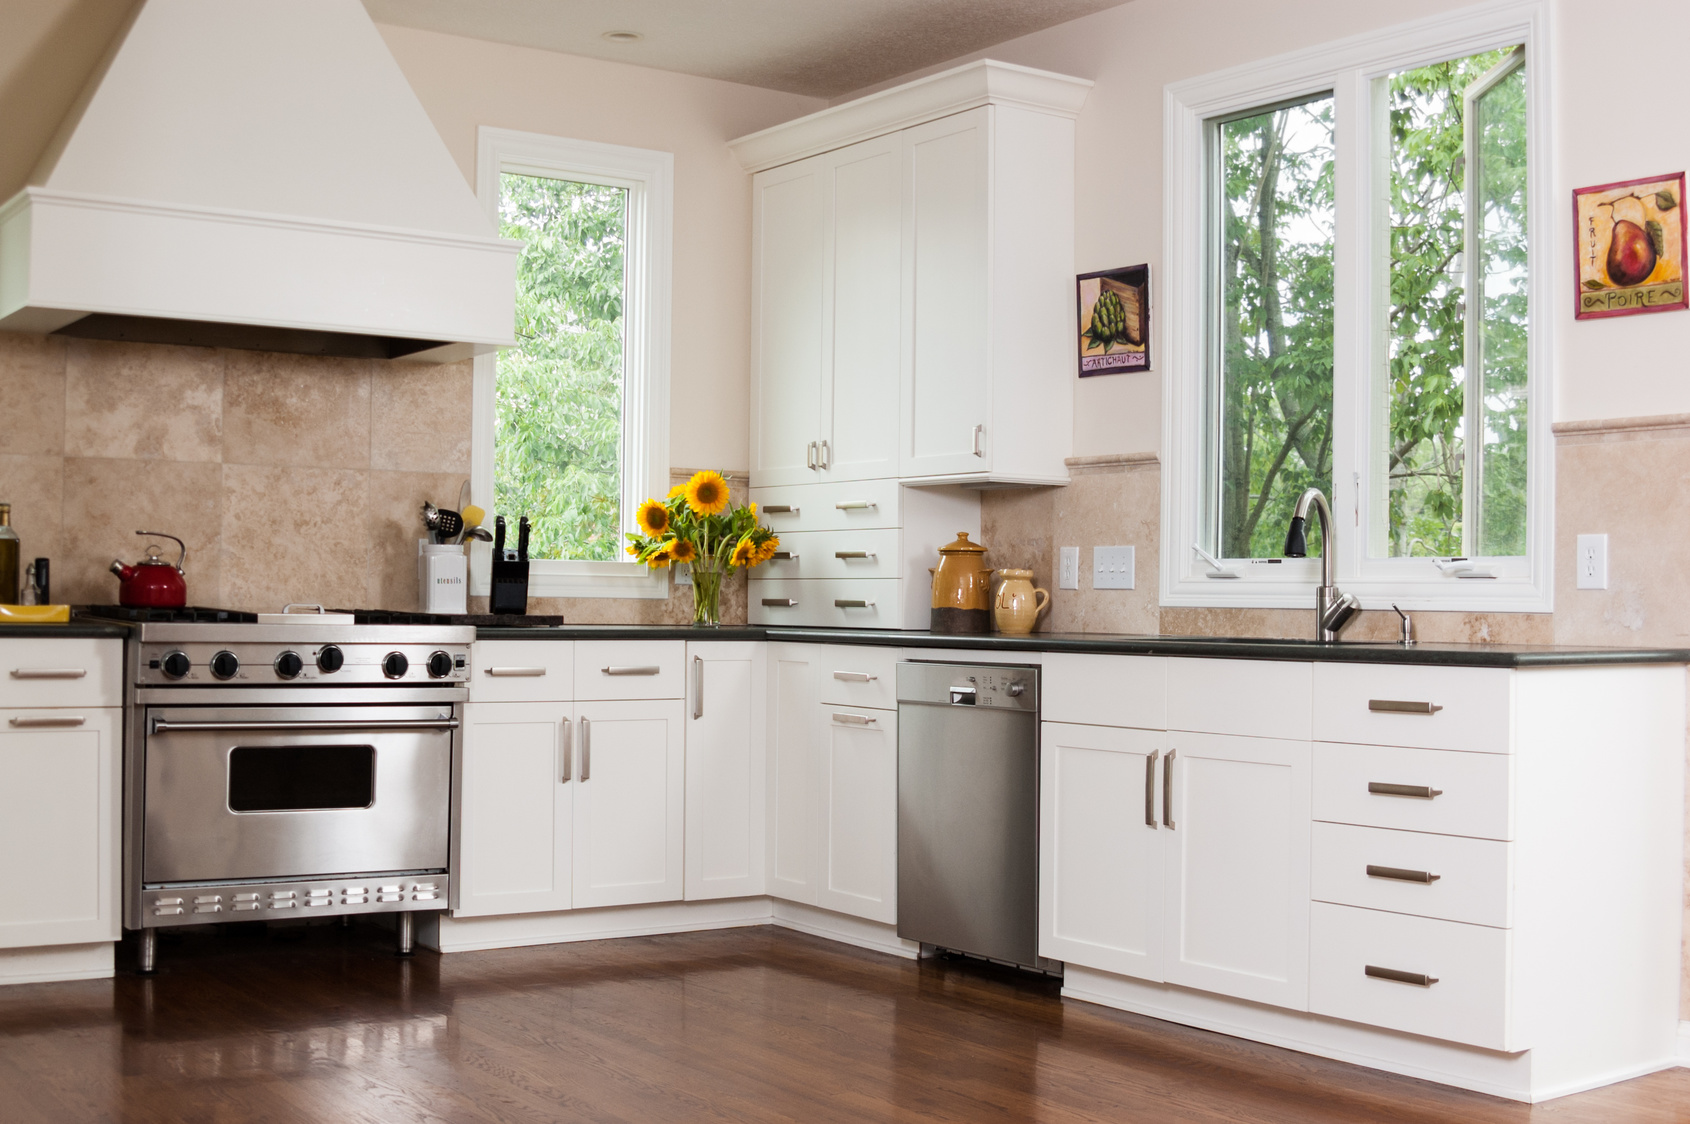 Best kitchen upgrades on a budget for Kitchen upgrades on a budget